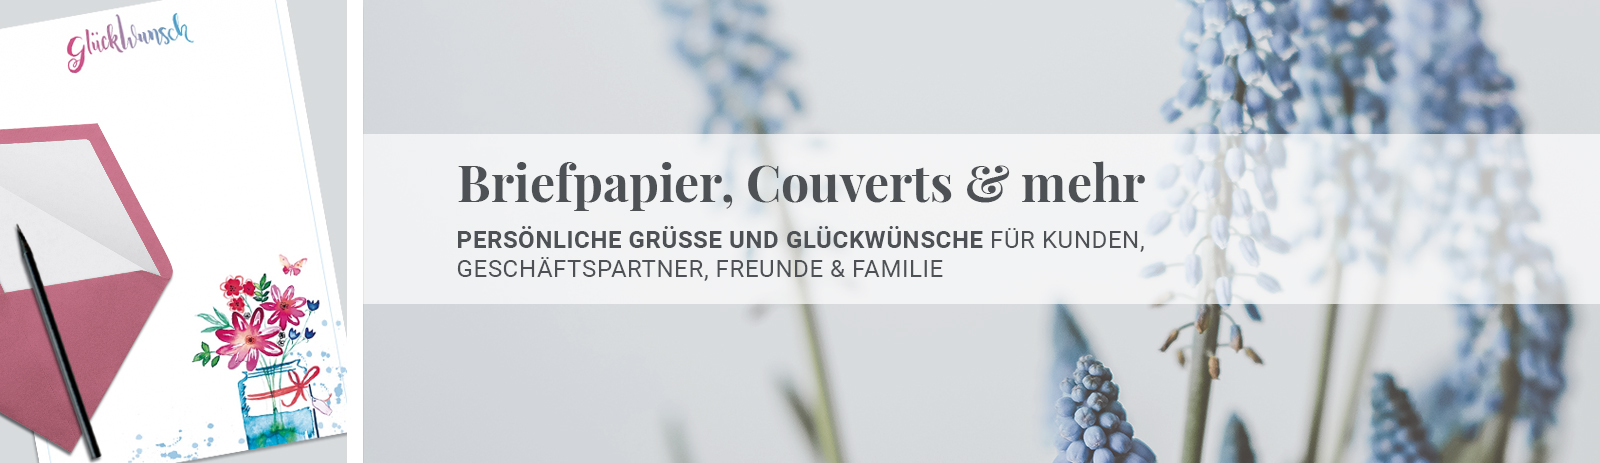 Briefpapier, Couverts & mehr